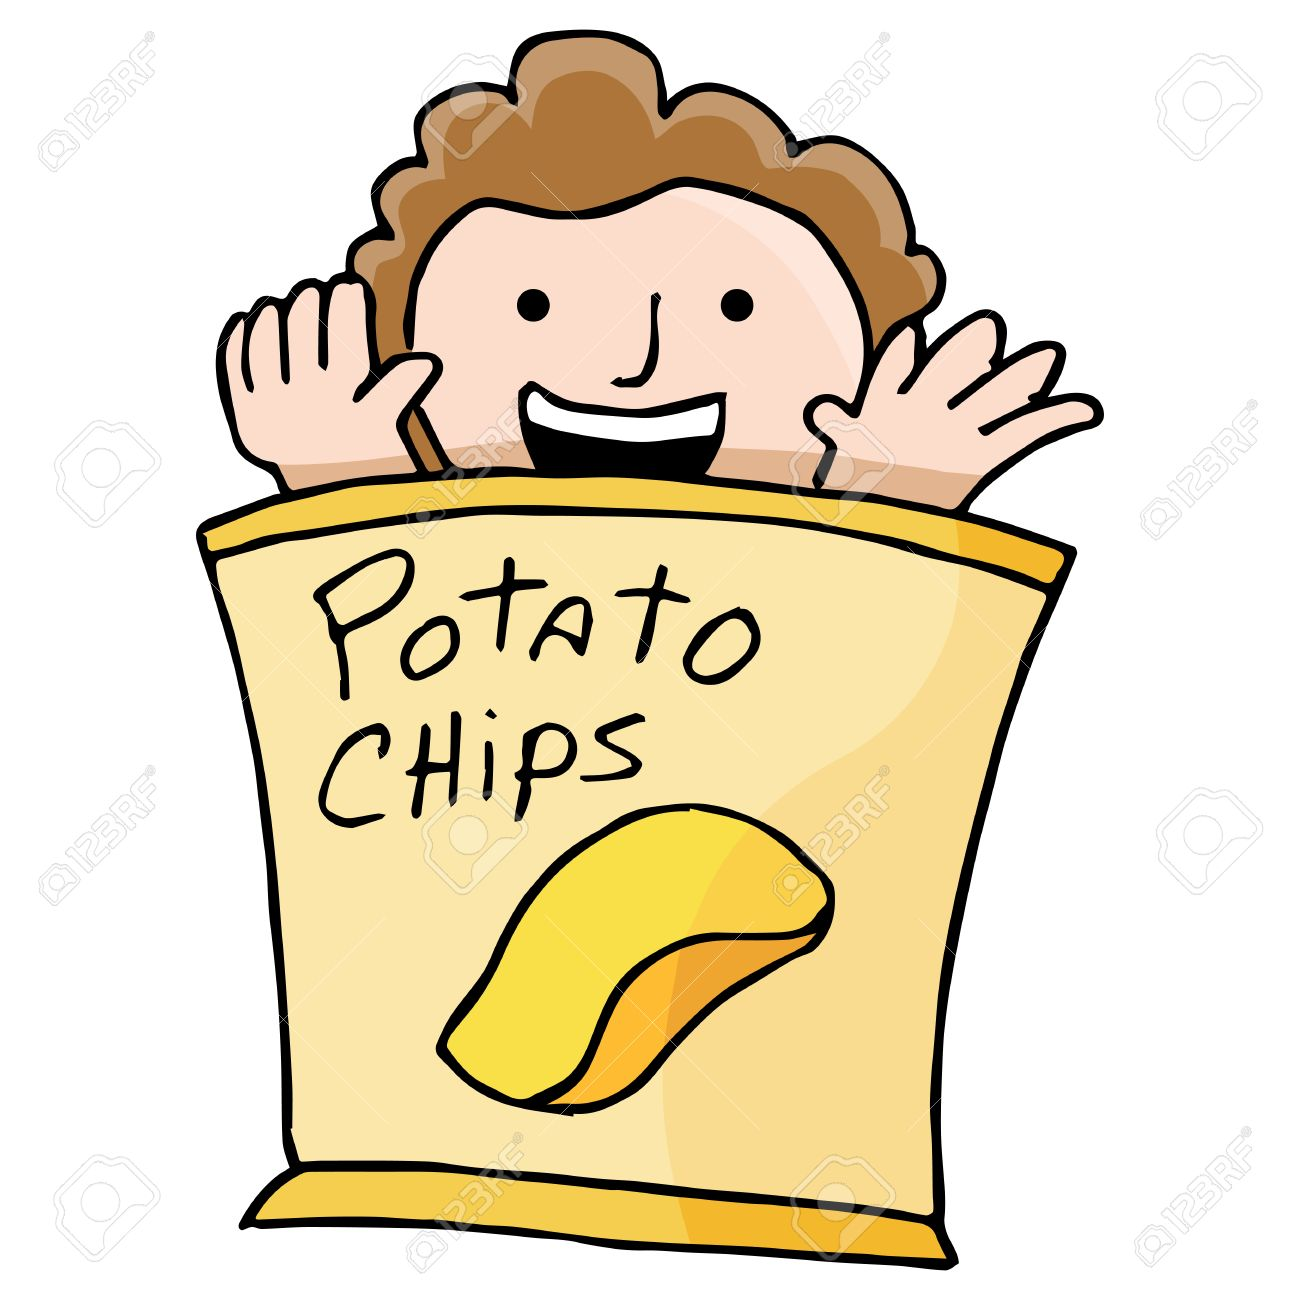 1300x1300 An Image Of A Kid Inside A Bag Of Potato Chips. Royalty Free